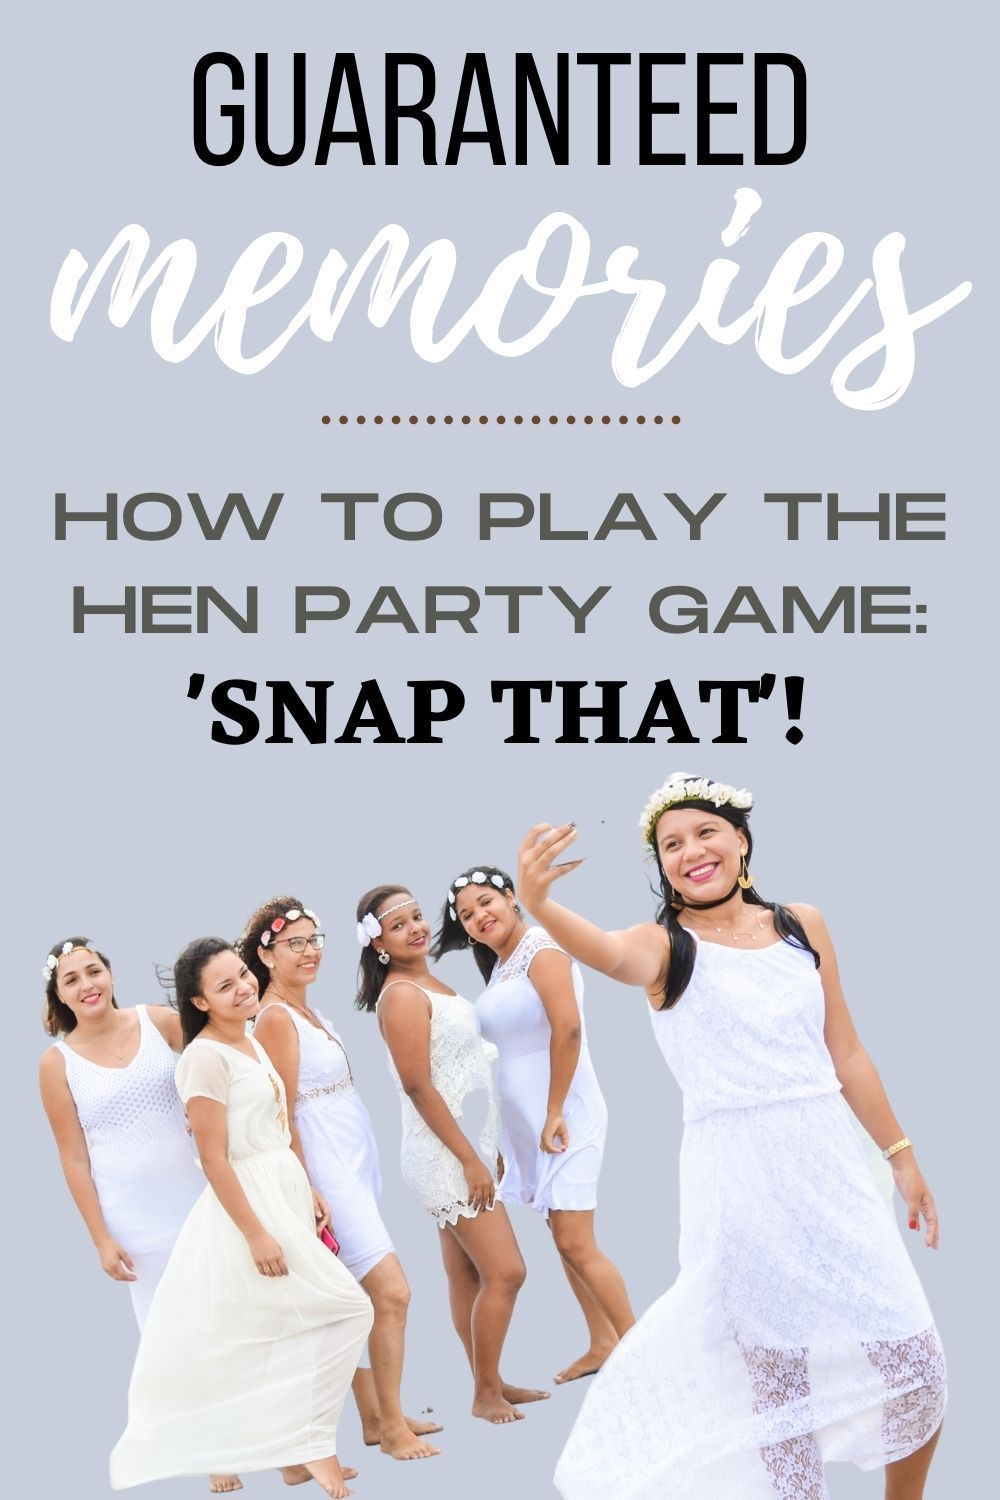 Bridal Shower Game Snap That In 2020 Hen Party Games Hen Party Bachelorette Party Games